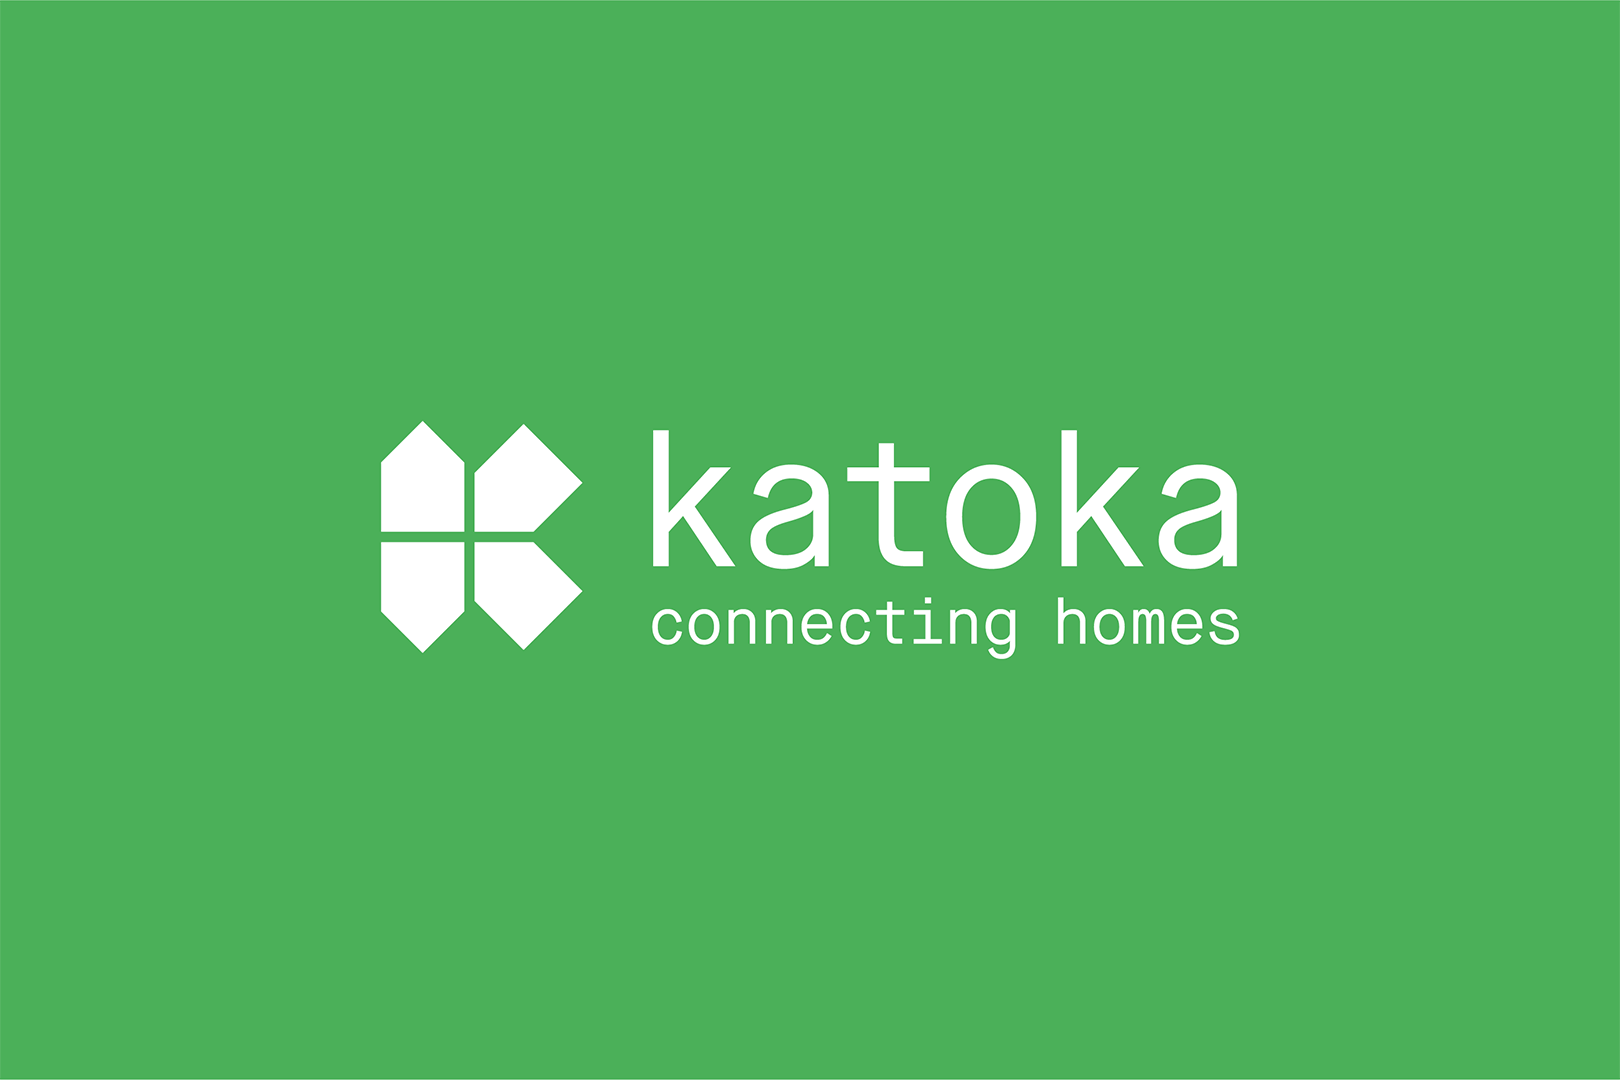 A Studio Creates a New Visual Identity System for Katoka